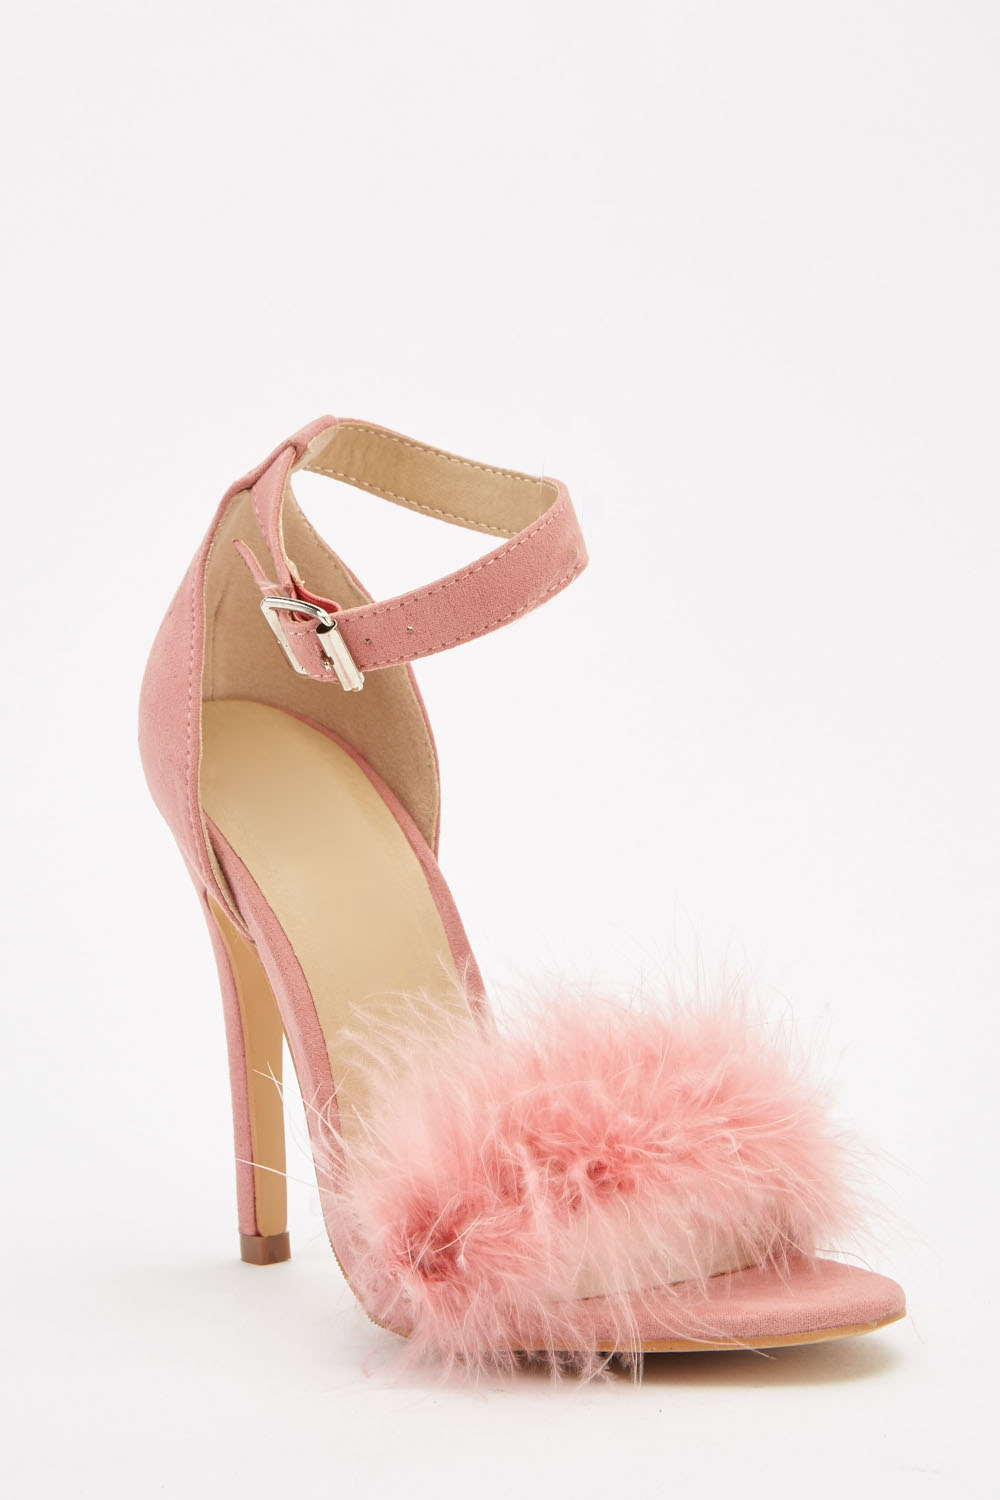 1f225a0ca145 Fluffy Ankle Strap Sandals - Black or Pink - Just £5